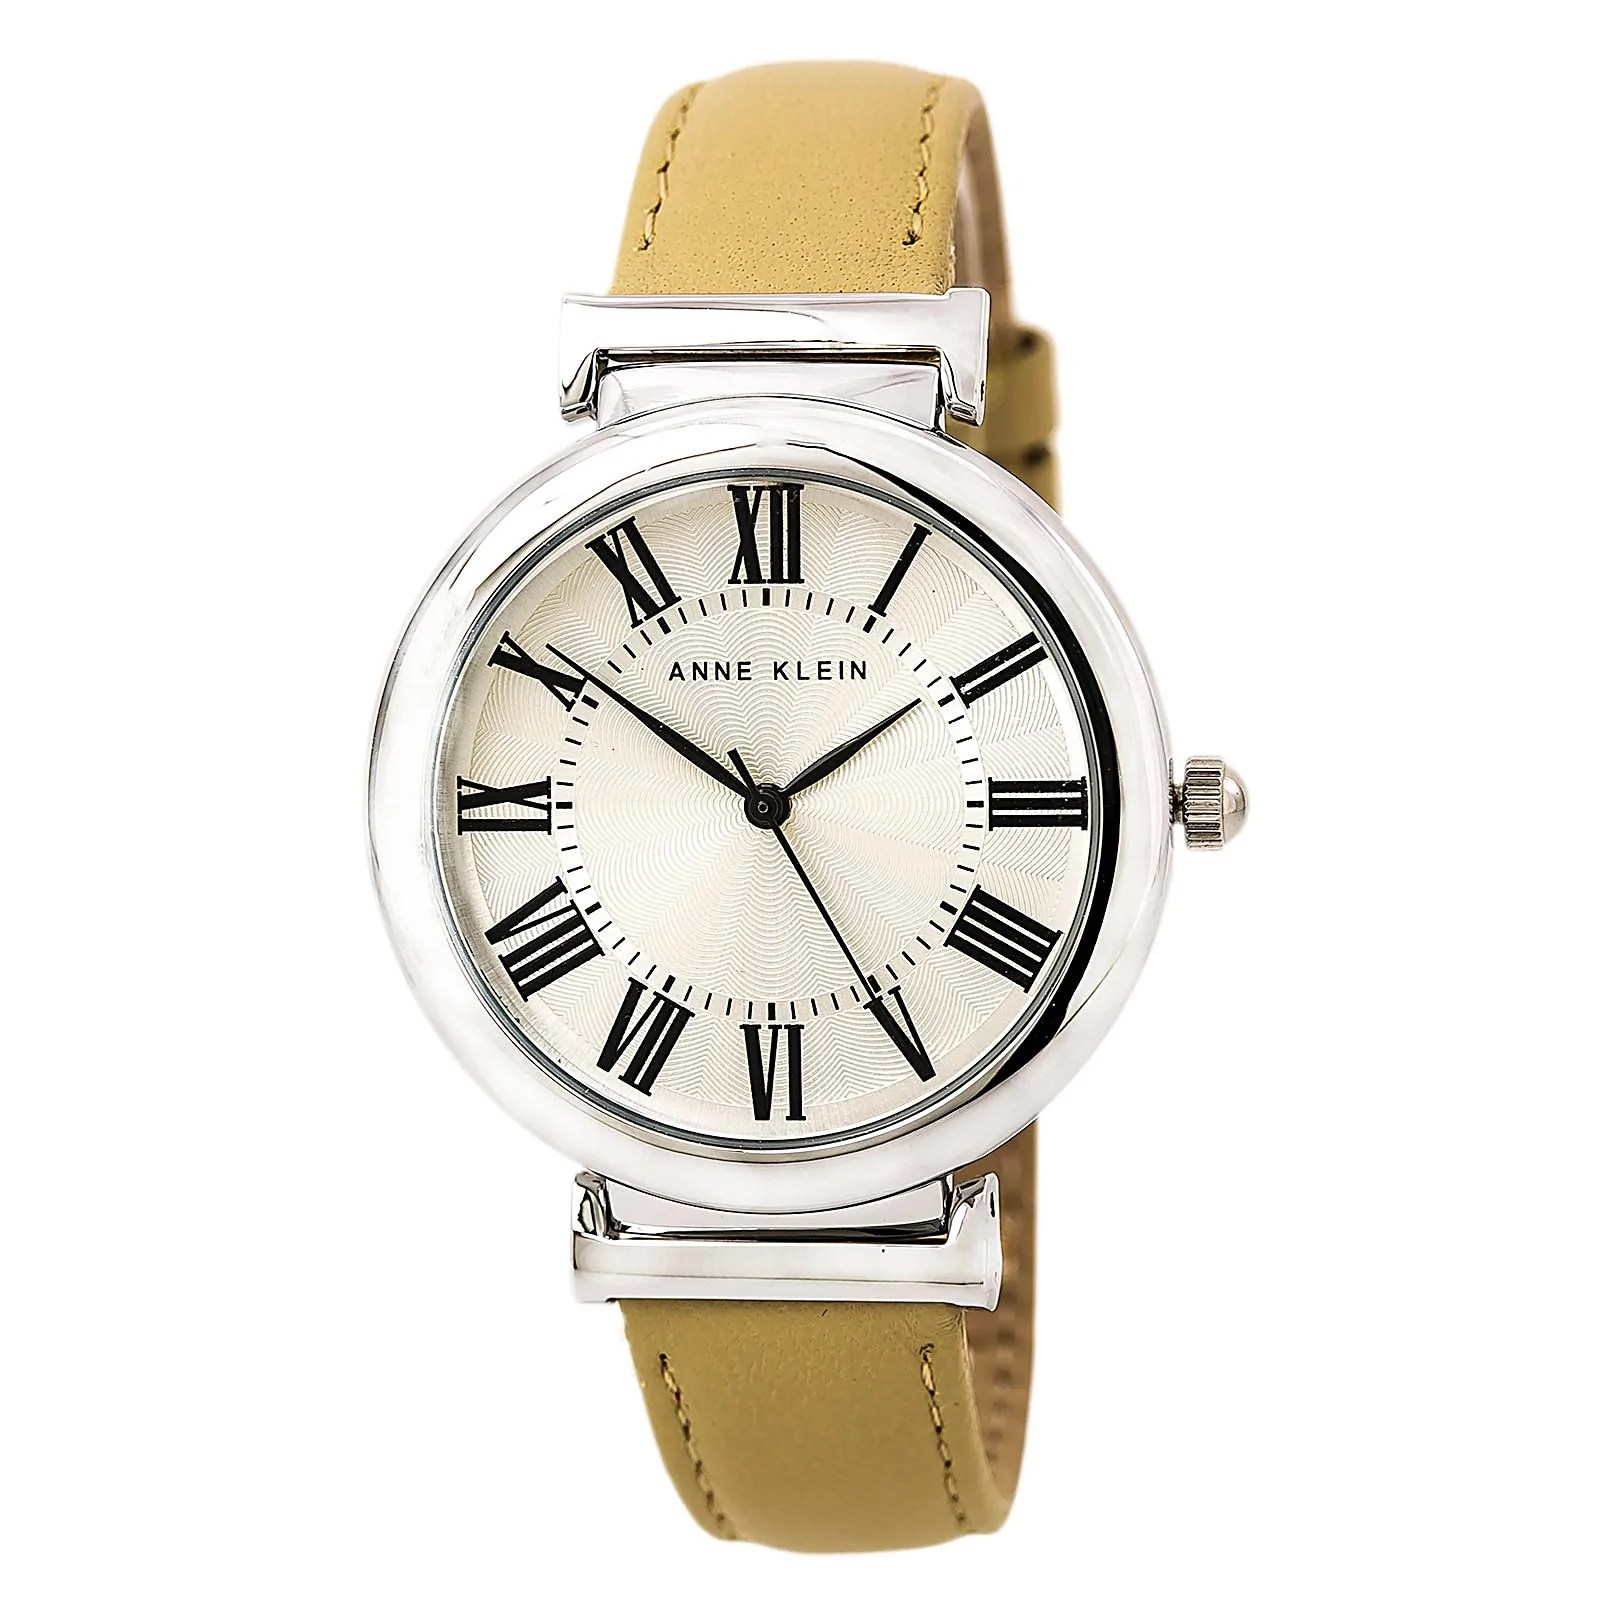 Anne Klein 2137SVTN Women's Silver Dial Beige Leather Band Watch